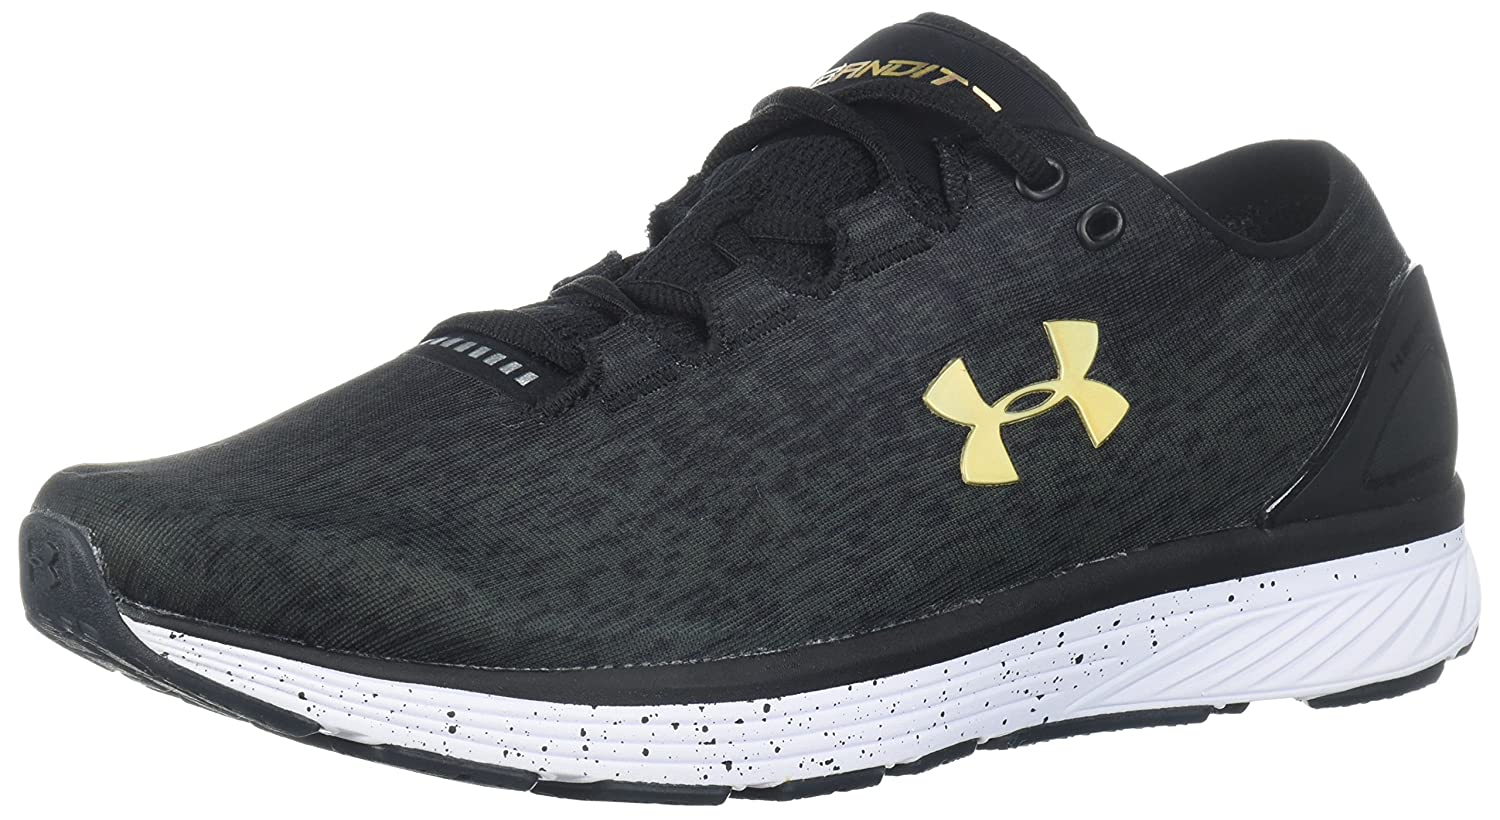 check out 8d2c7 44a15 Under Armour Men's Laufschuh Ua Charged Bandit 3 Ombre Fitness Shoes